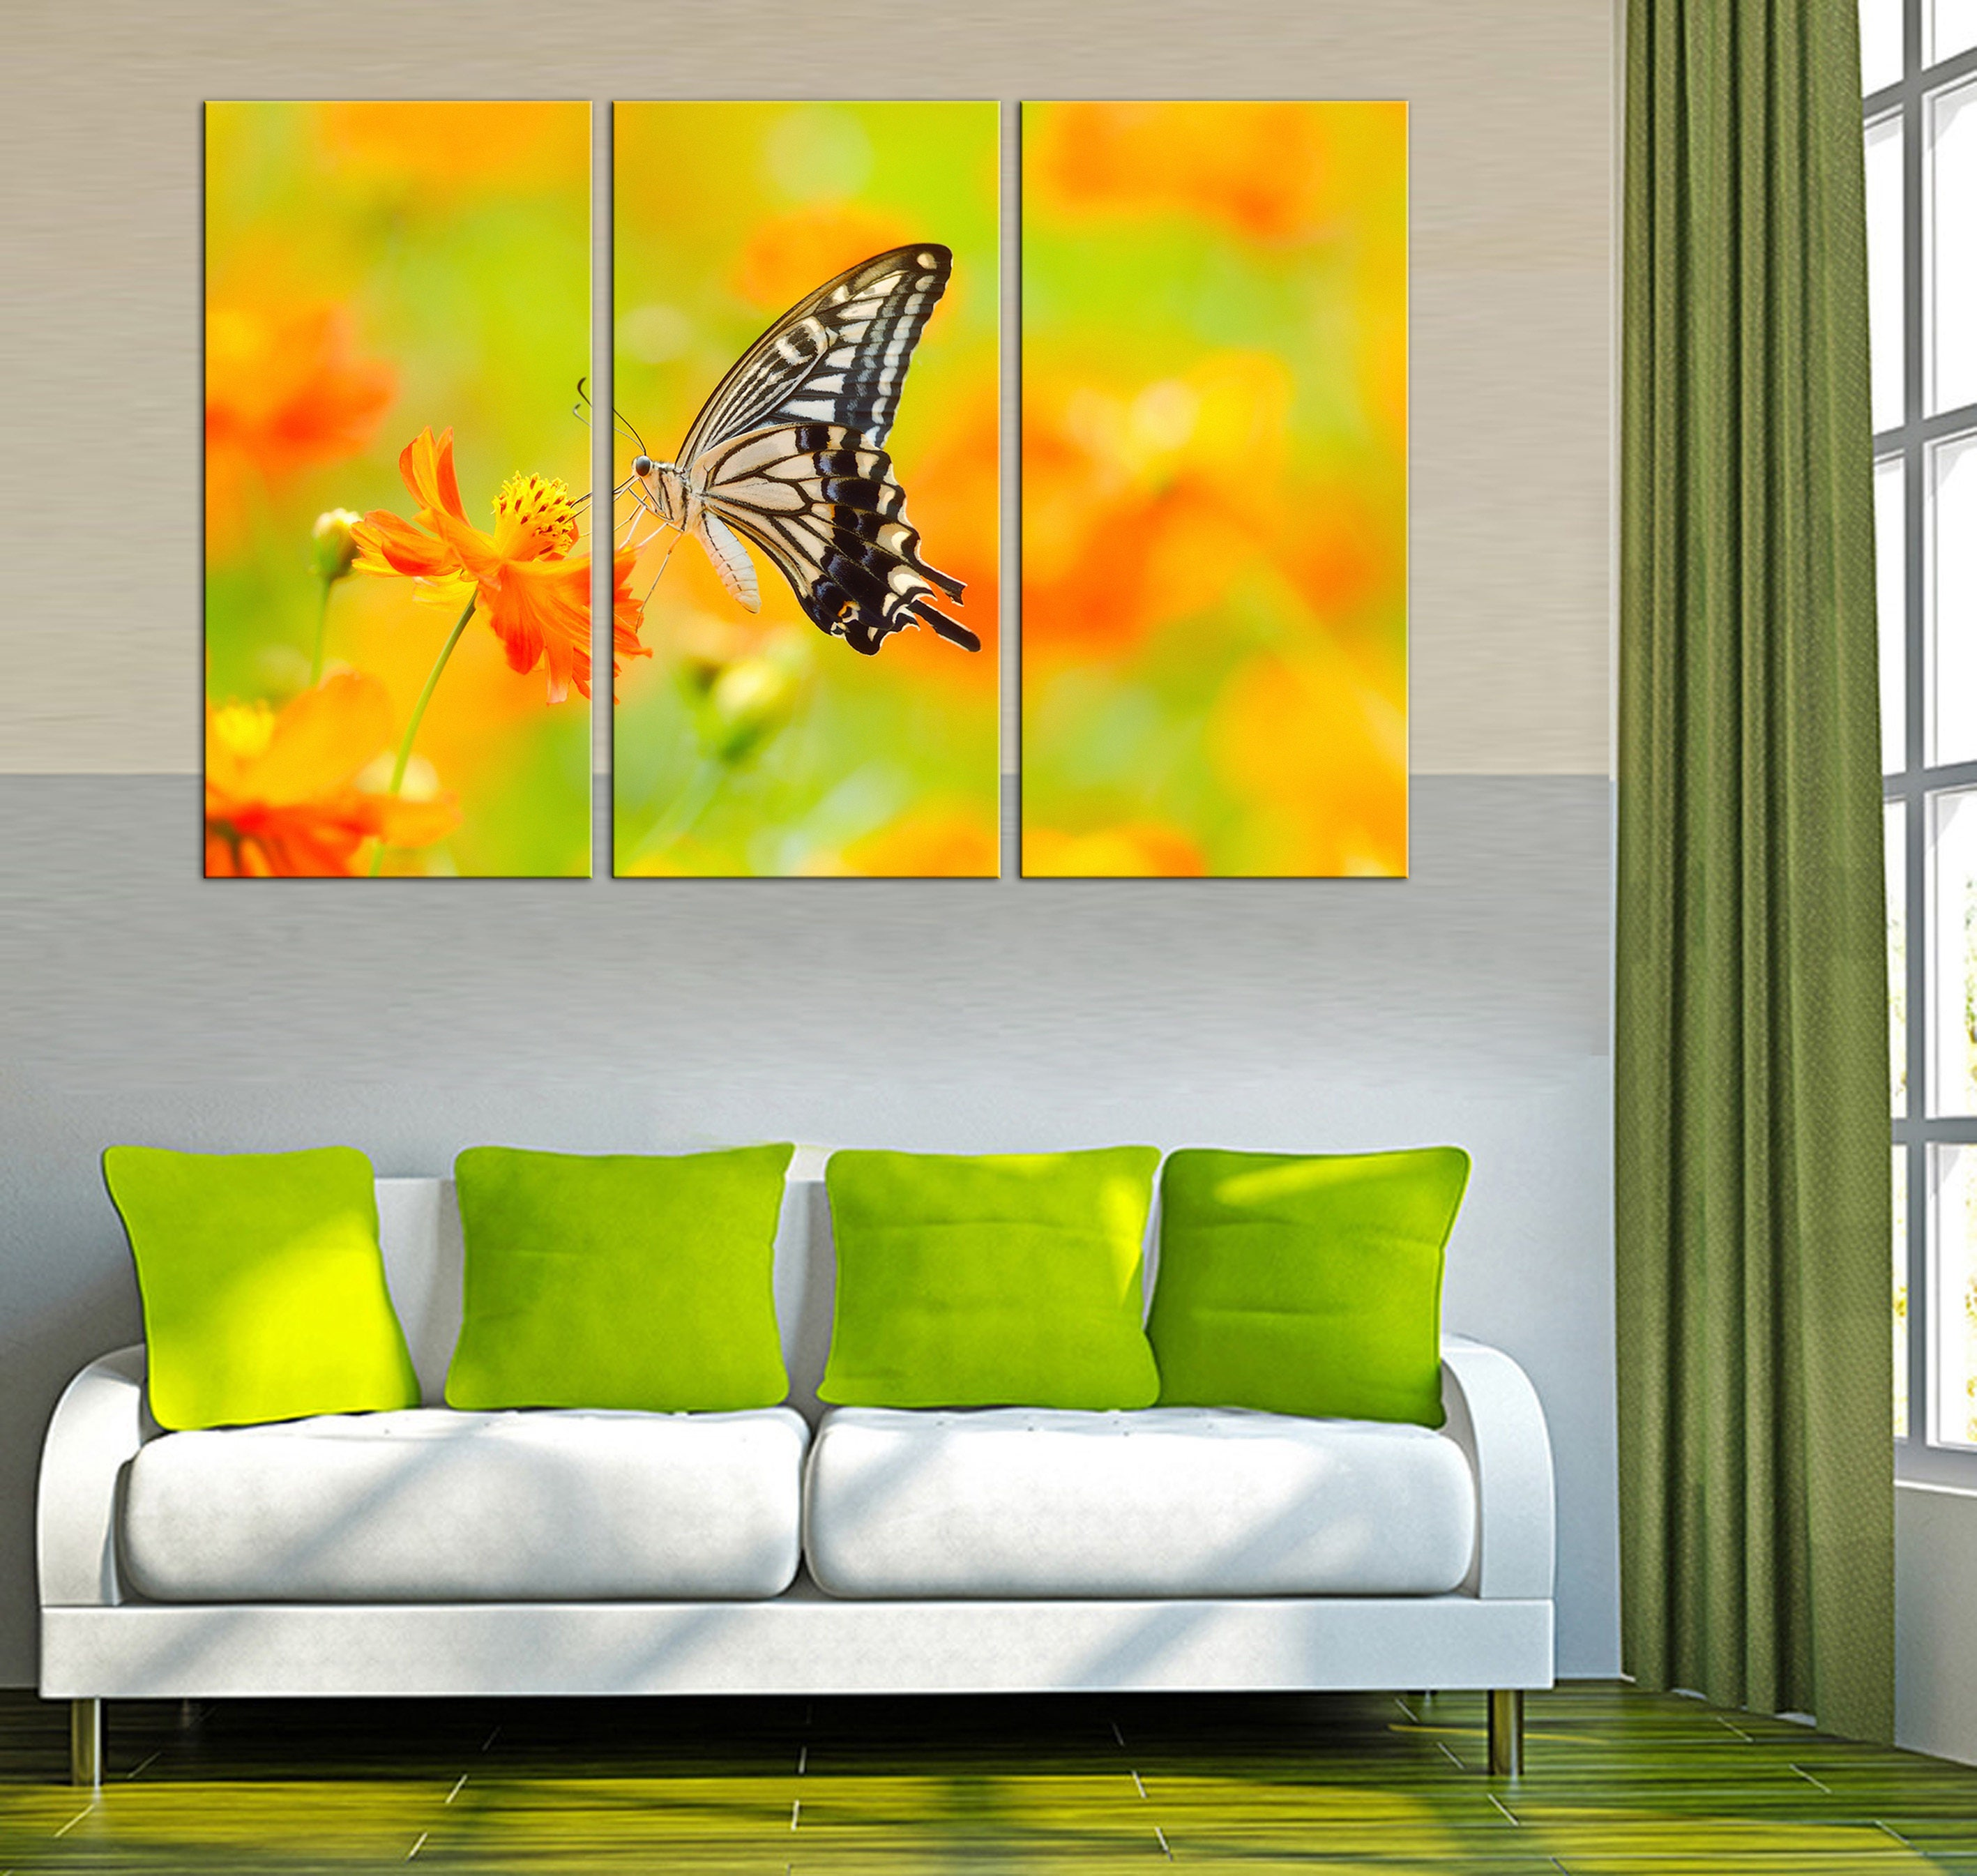 Wall decor Butterfly canvas decor Butterfly wall art Decor canvas ...